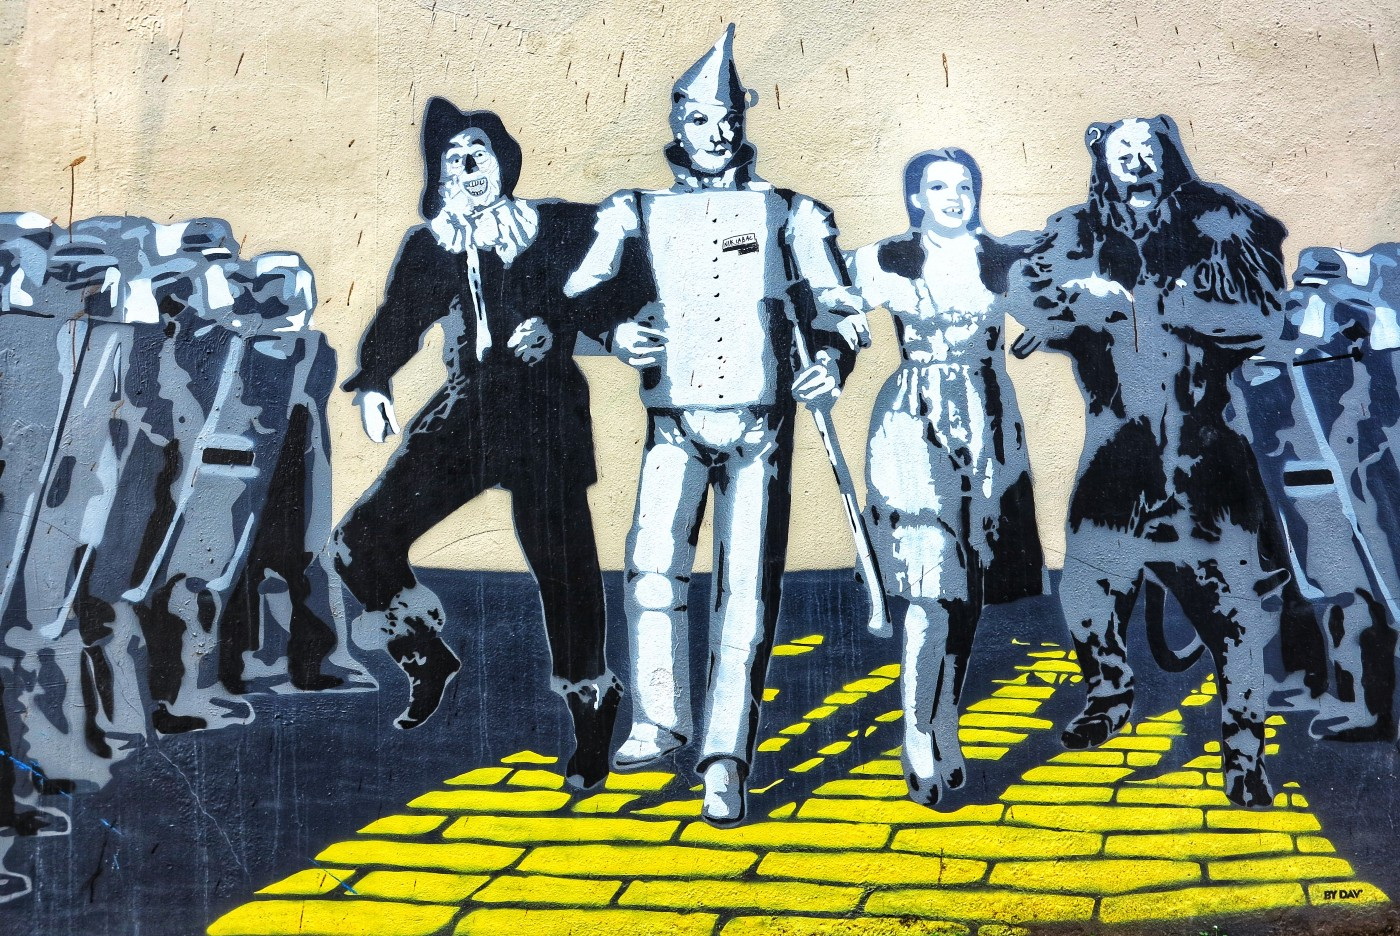 The Wizard of Oz characters marching on the yellow brick path